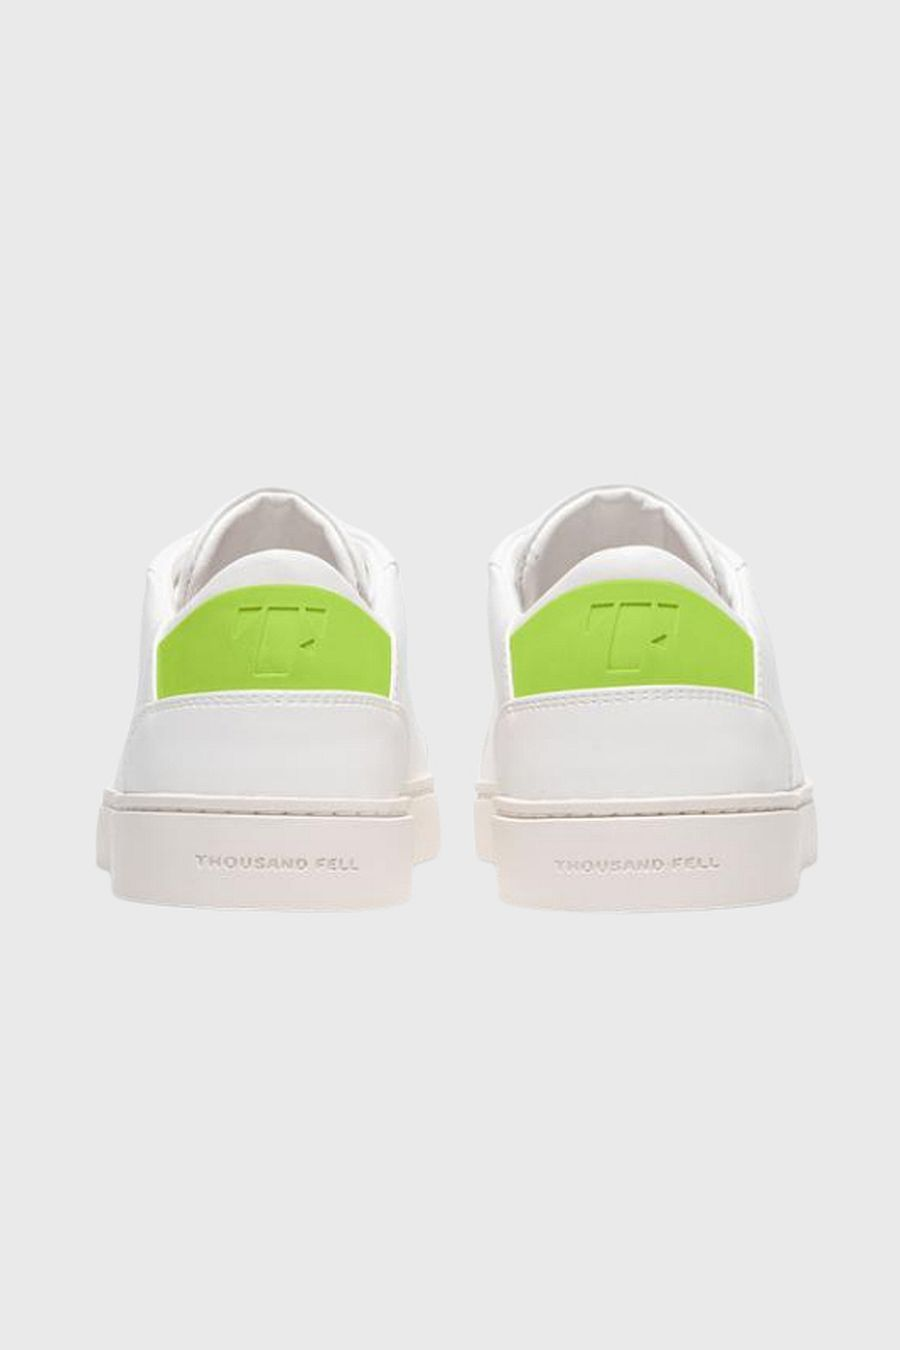 Thousand Fell Women's Lace Up   Acid (Neon Green)